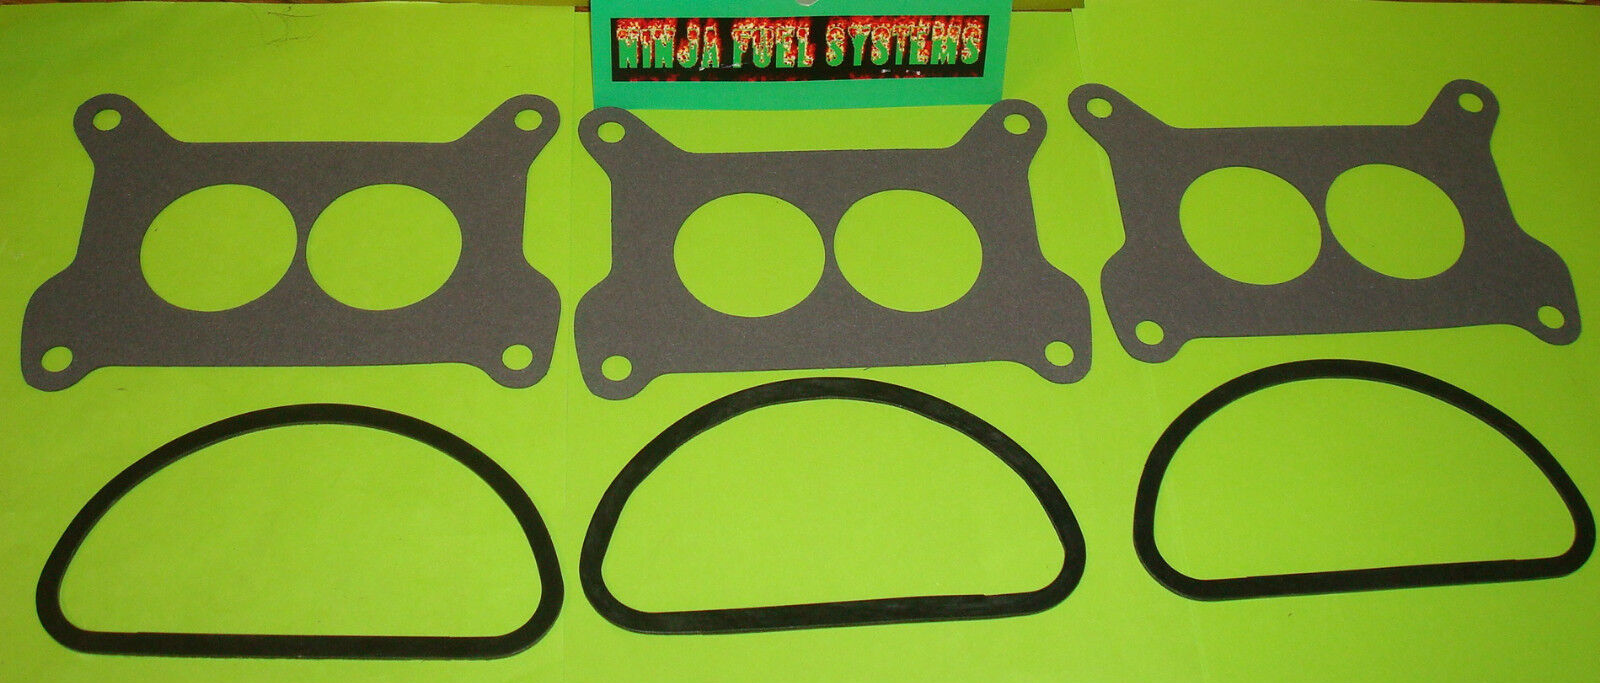 Mopar 6 Pack Tri Power Carburetor Base And Air Cleaner Gasket Set For Holley